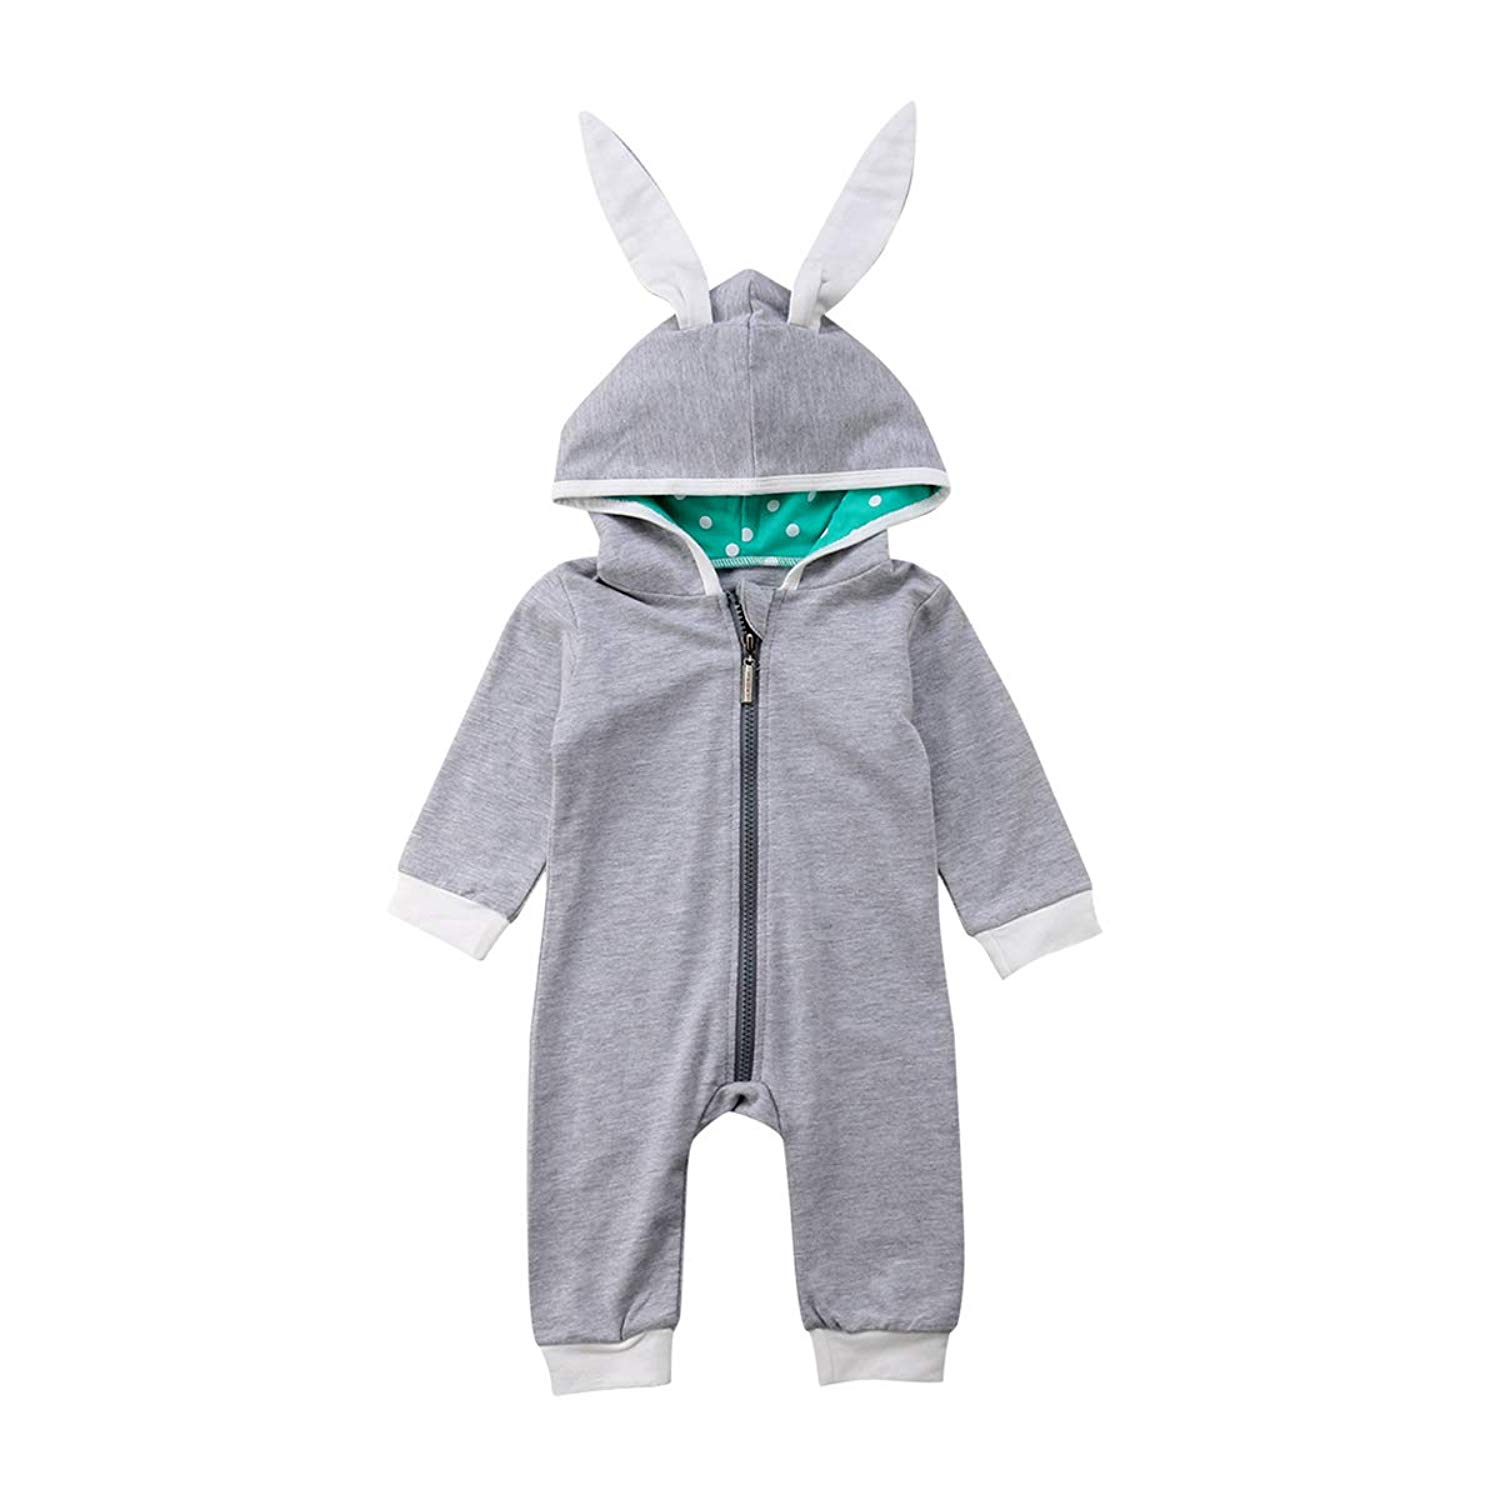 One opening Infant Toddler Baby Boys Girls Romper Footless Cute Zipper Front Pajamas Sleeper Play Suits